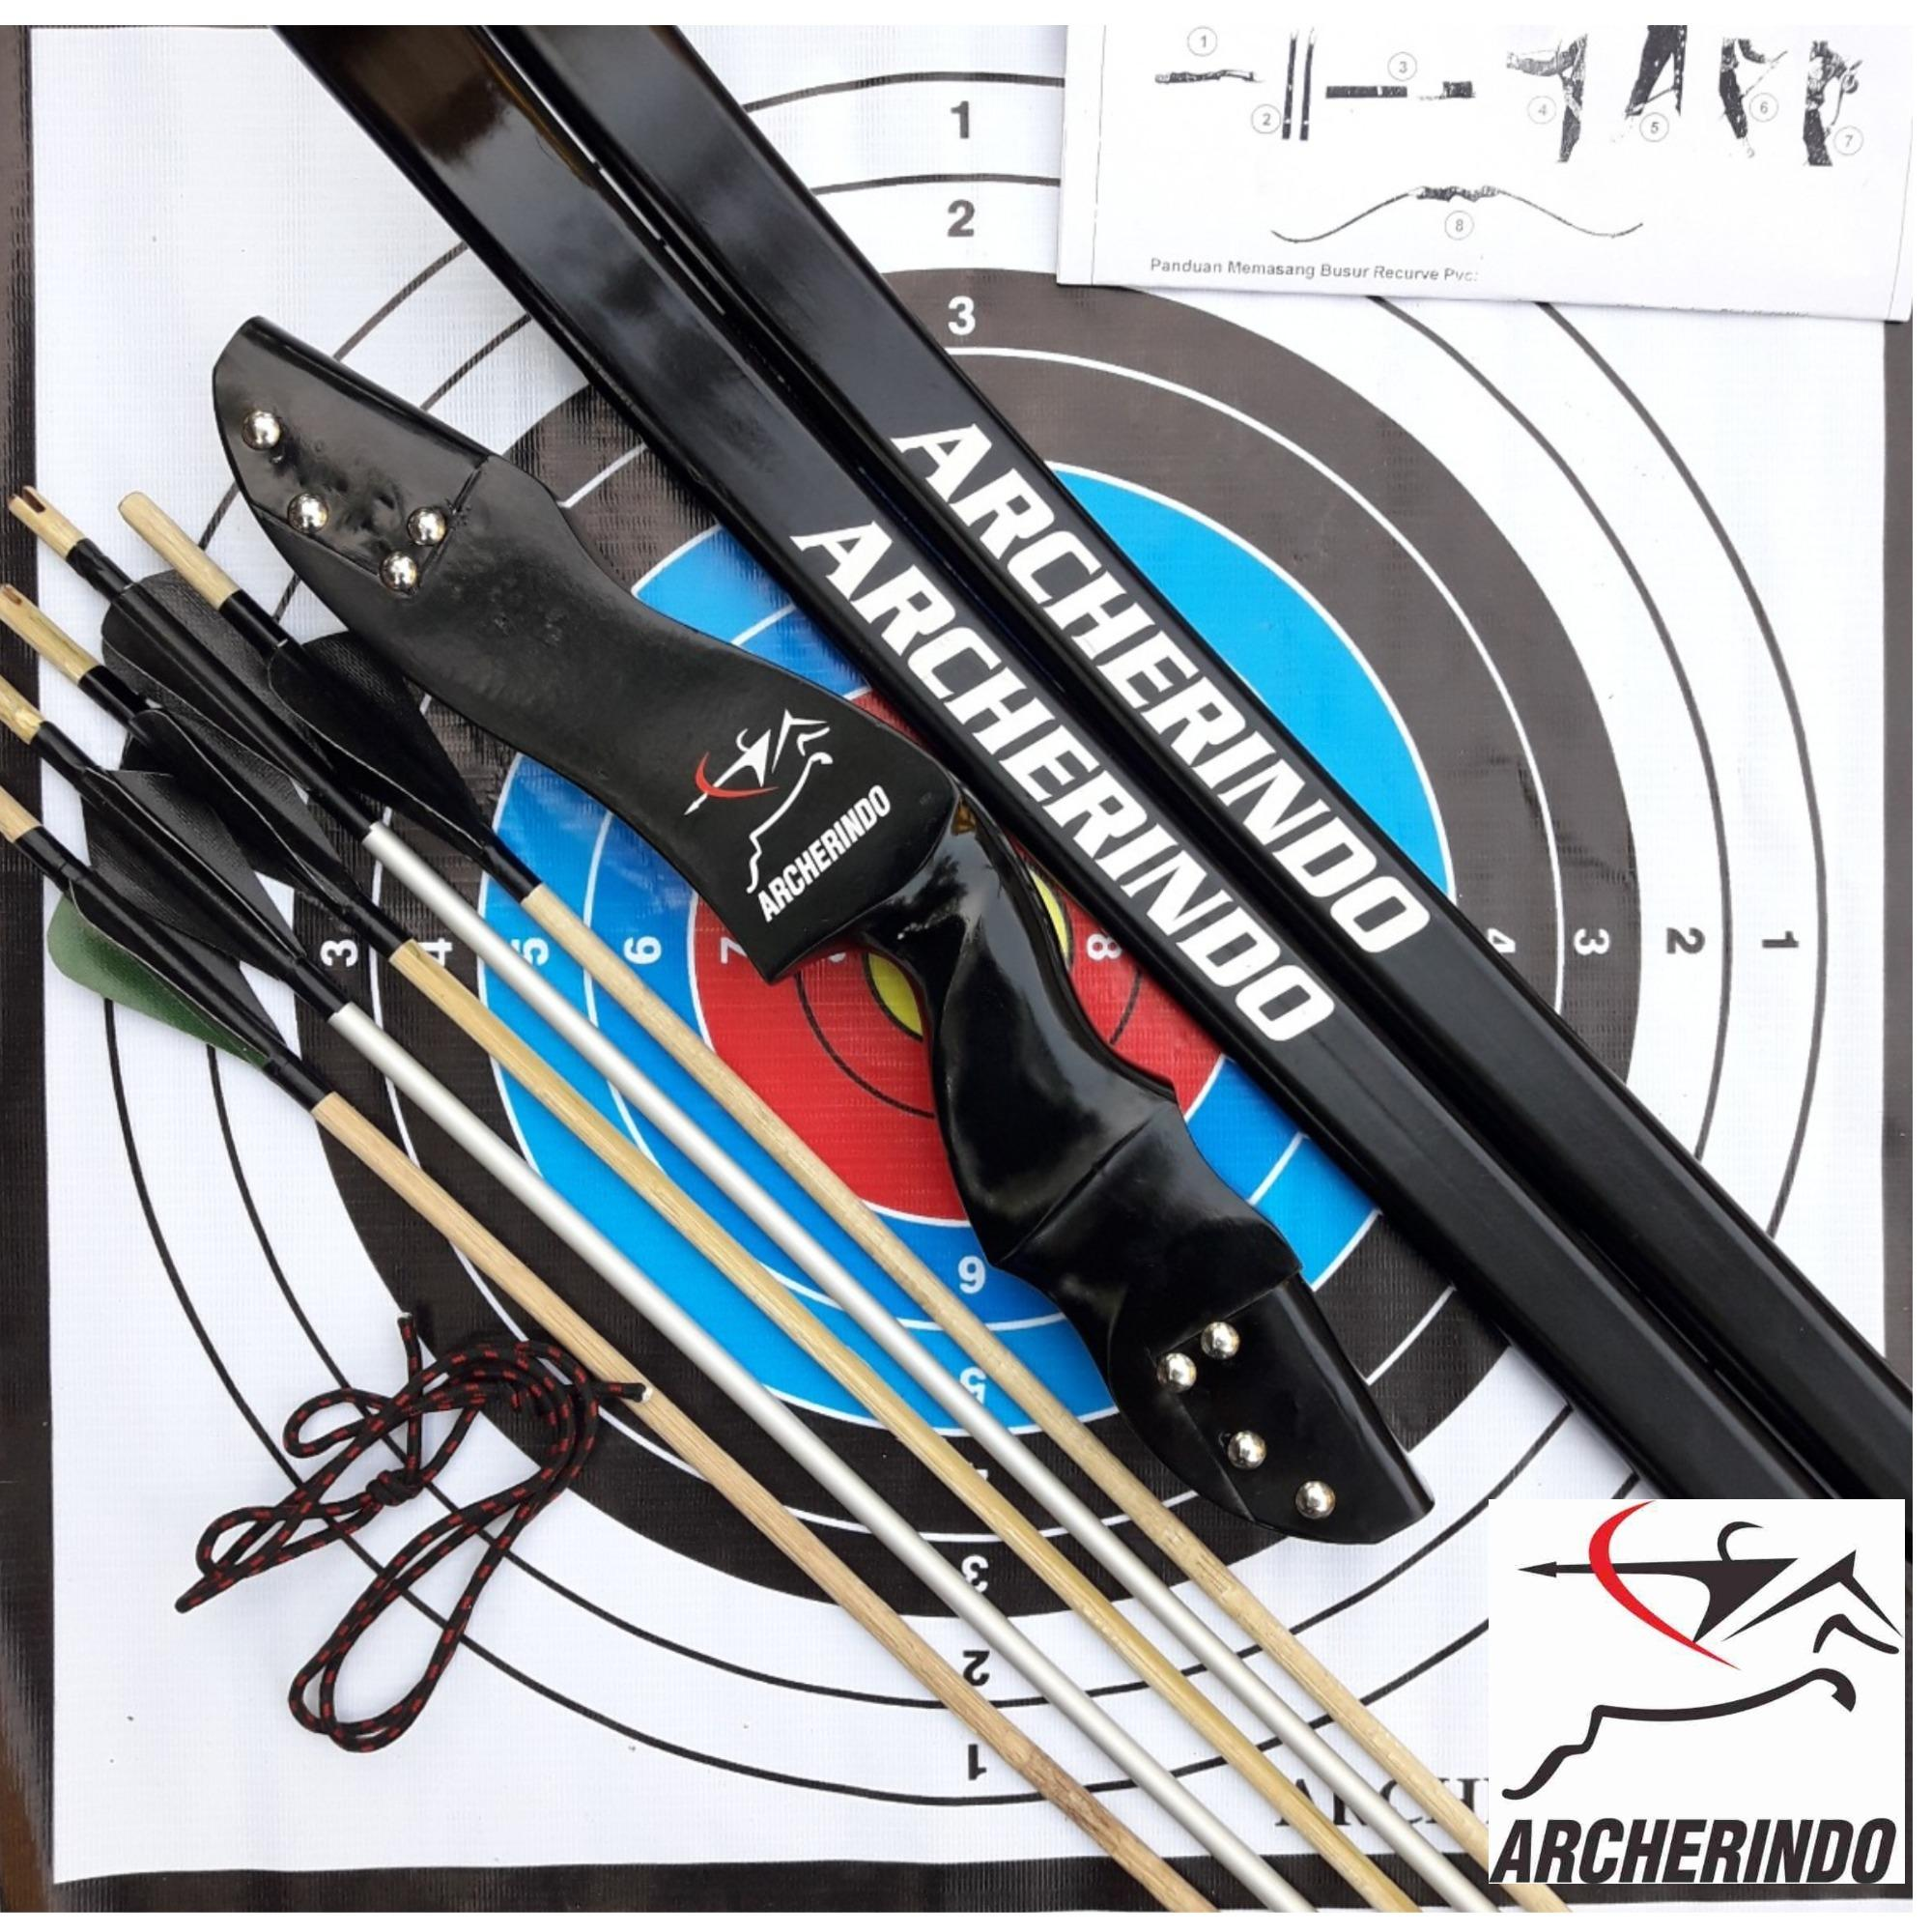 Archerindo Wooden Recurve Bow R40 Extra 5 Anak Panah Point Besi By Archerindo.